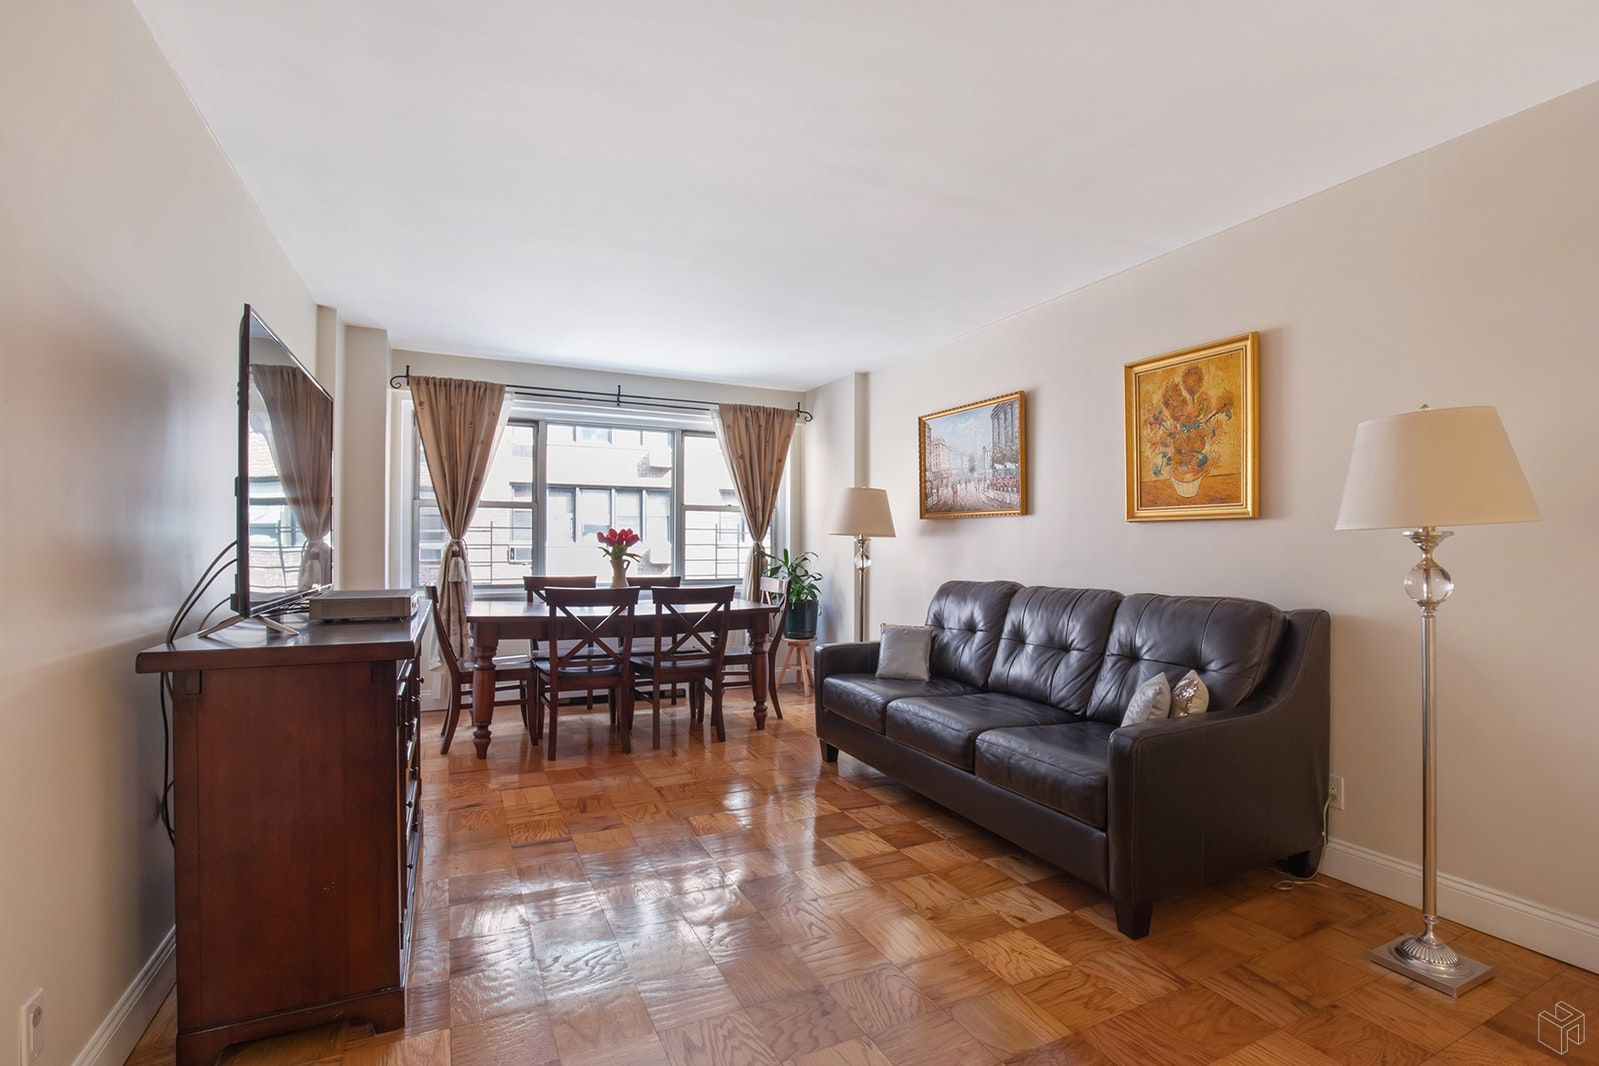 211 EAST 53RD STREET 8AB, Midtown East, $1,245,000, Web #: 19475610